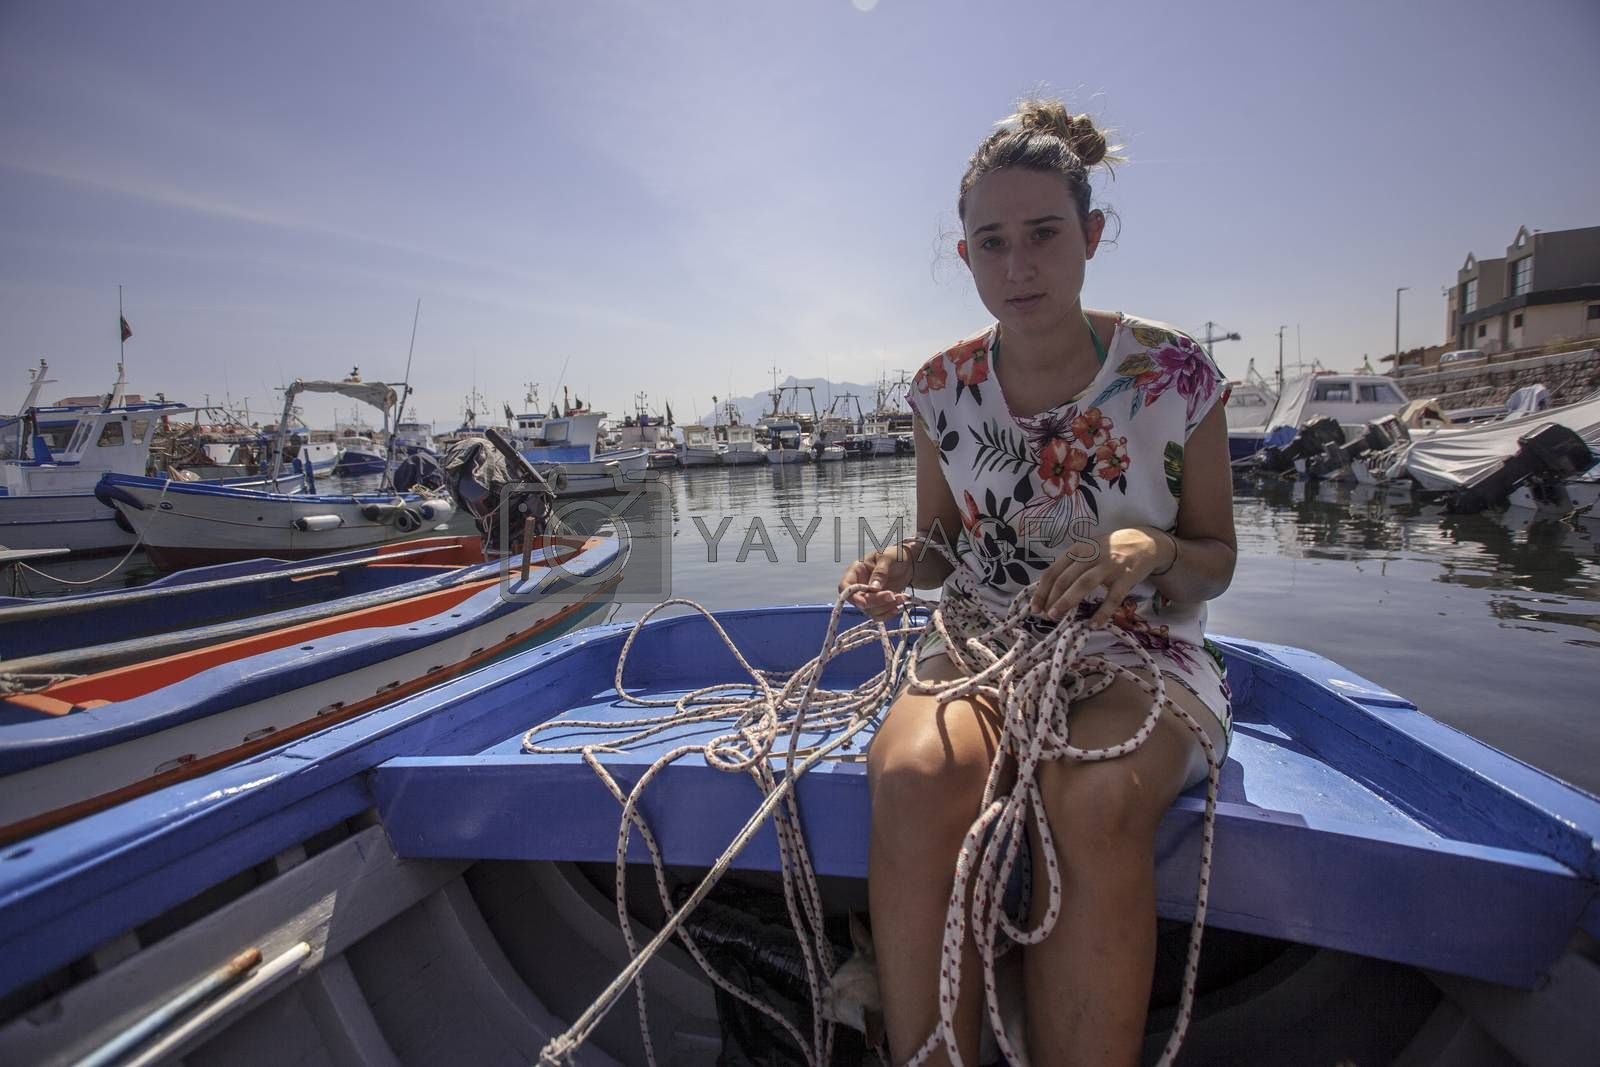 Royalty free image of Girl with ropes in the boat #2 by pippocarlot